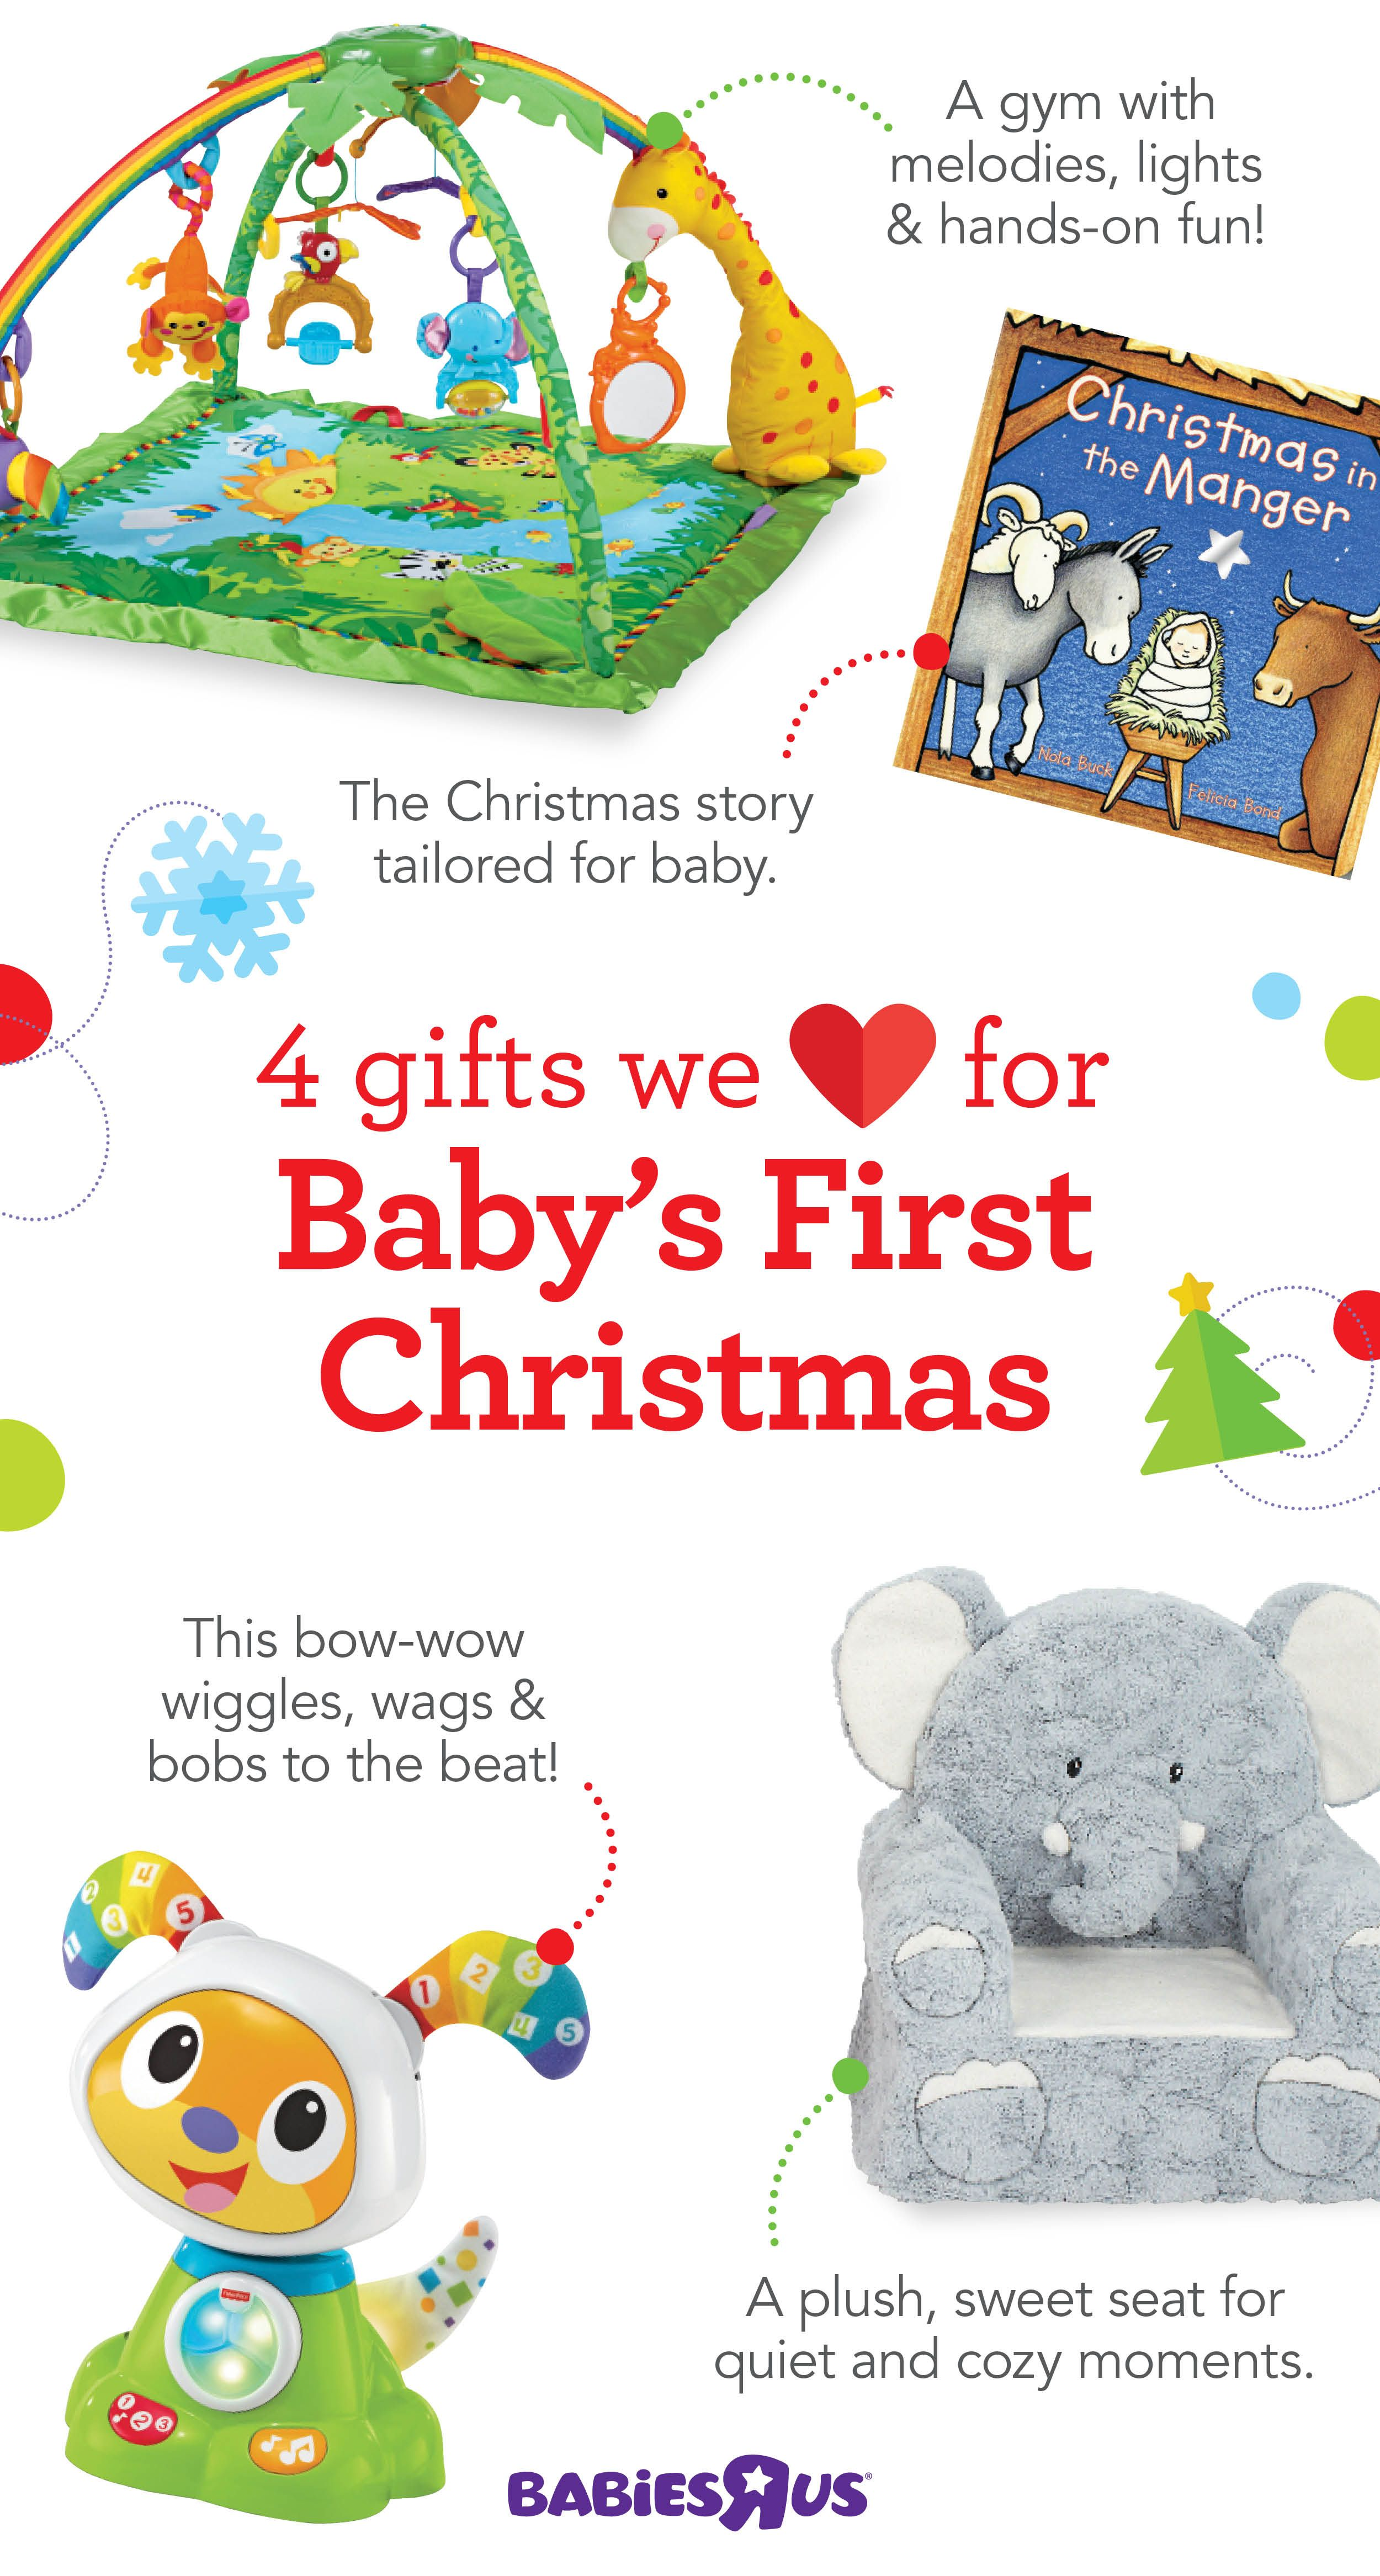 It\'s Baby\'s First Christmas. Time to bring on gifts of joy for every ...